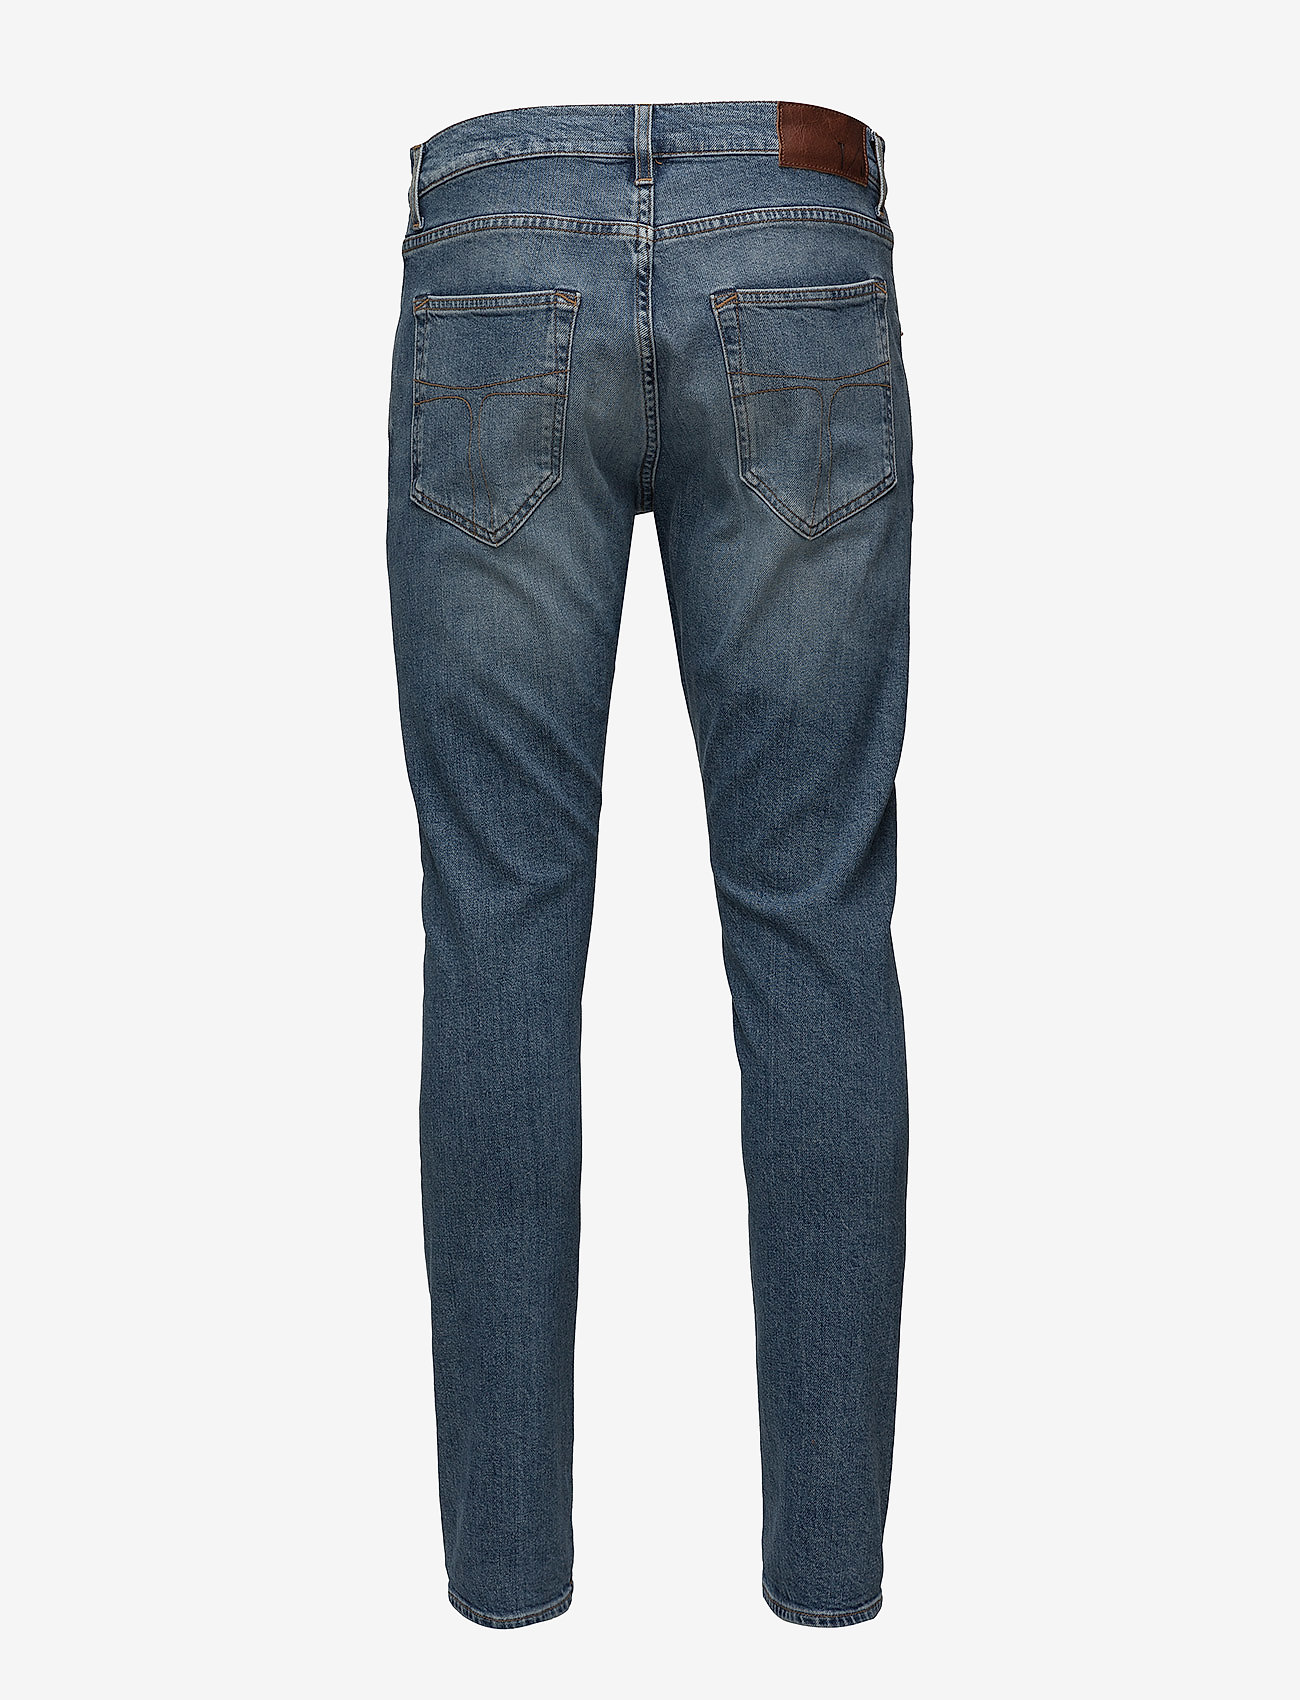 Tiger of Sweden Jeans PISTOLERO - Jeans DUST BLUE - Menn Klær